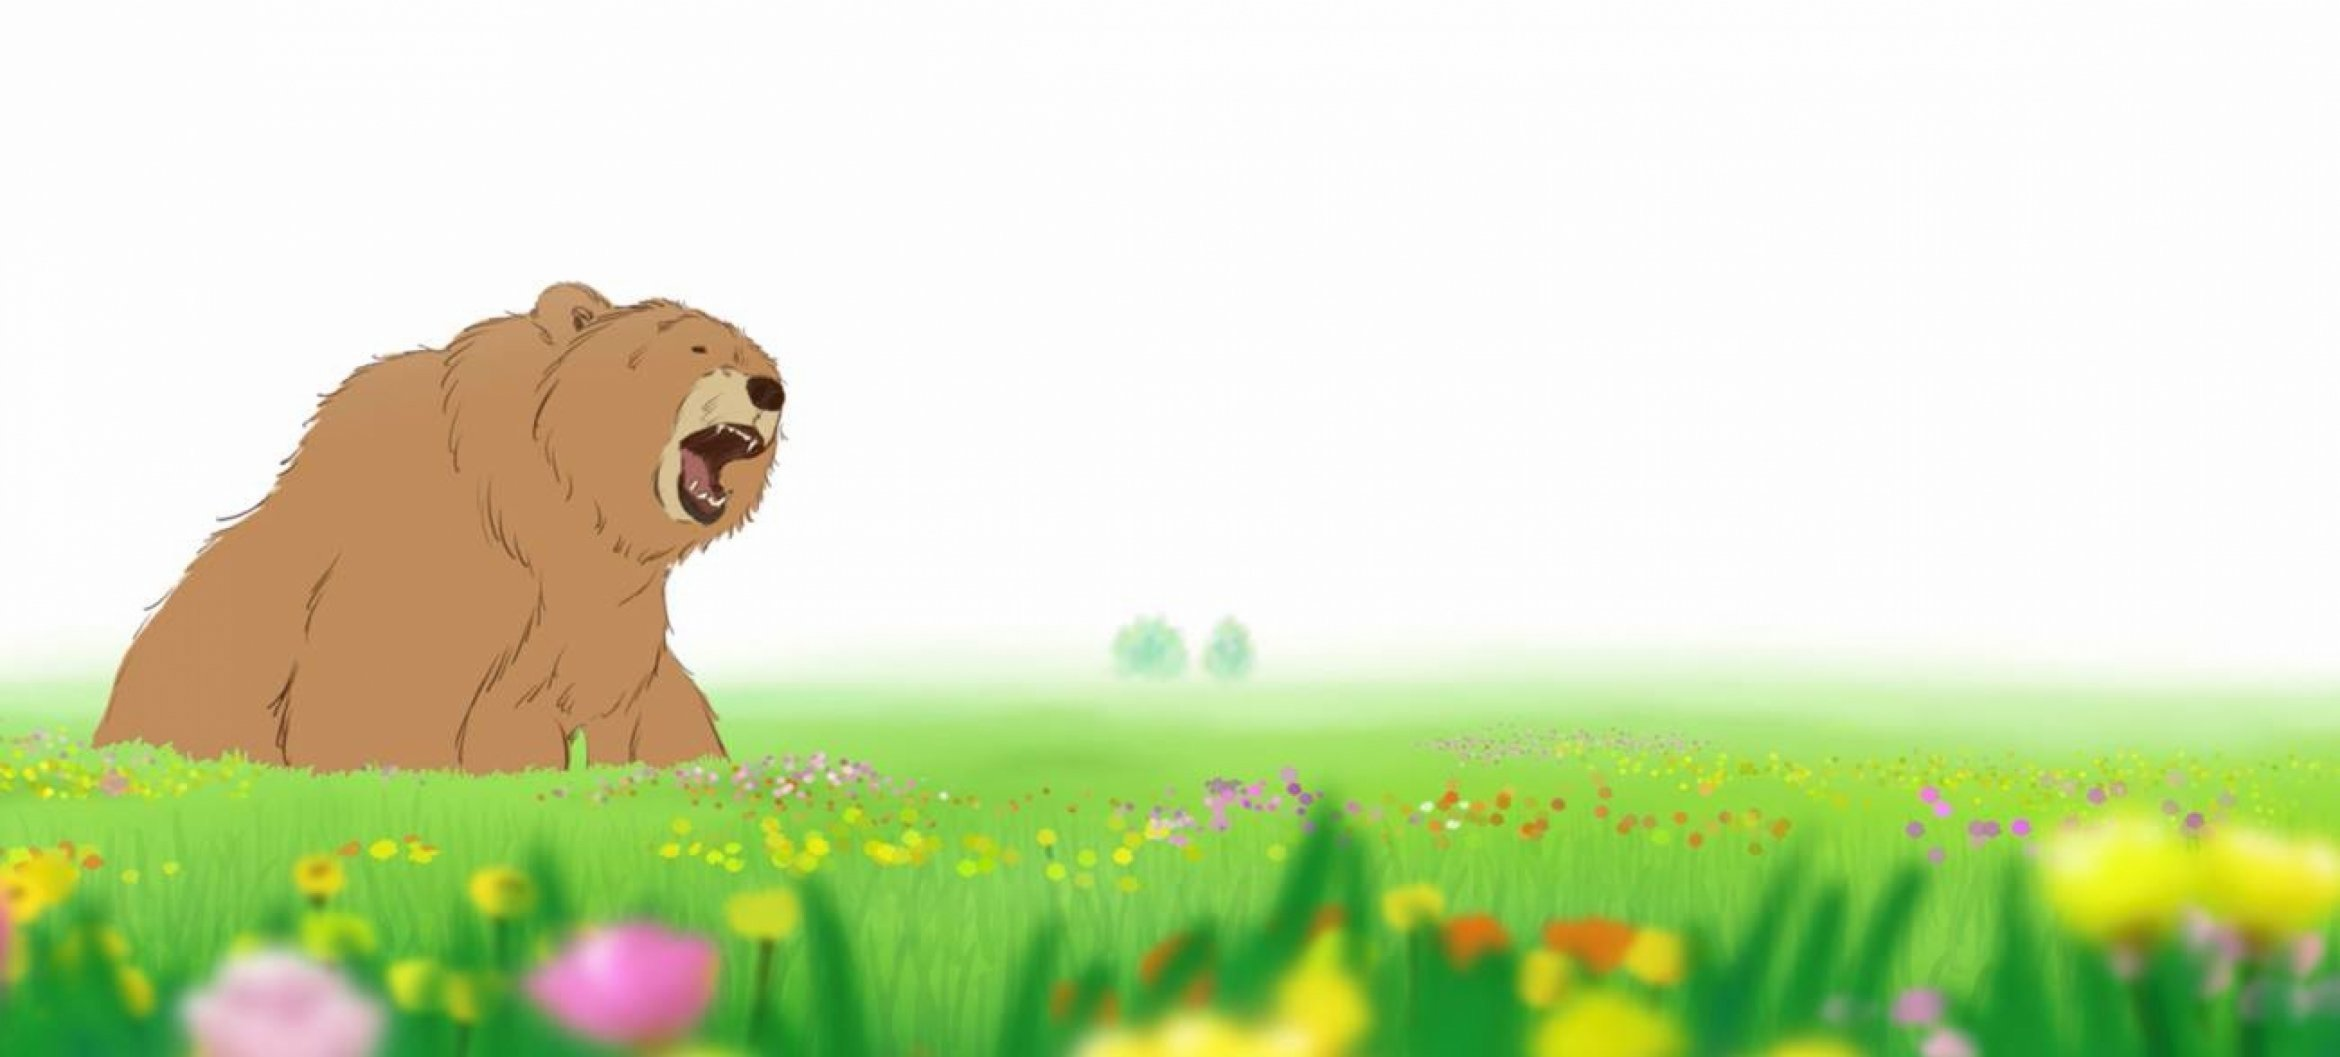 Animated Bears: a computer generated nature movie